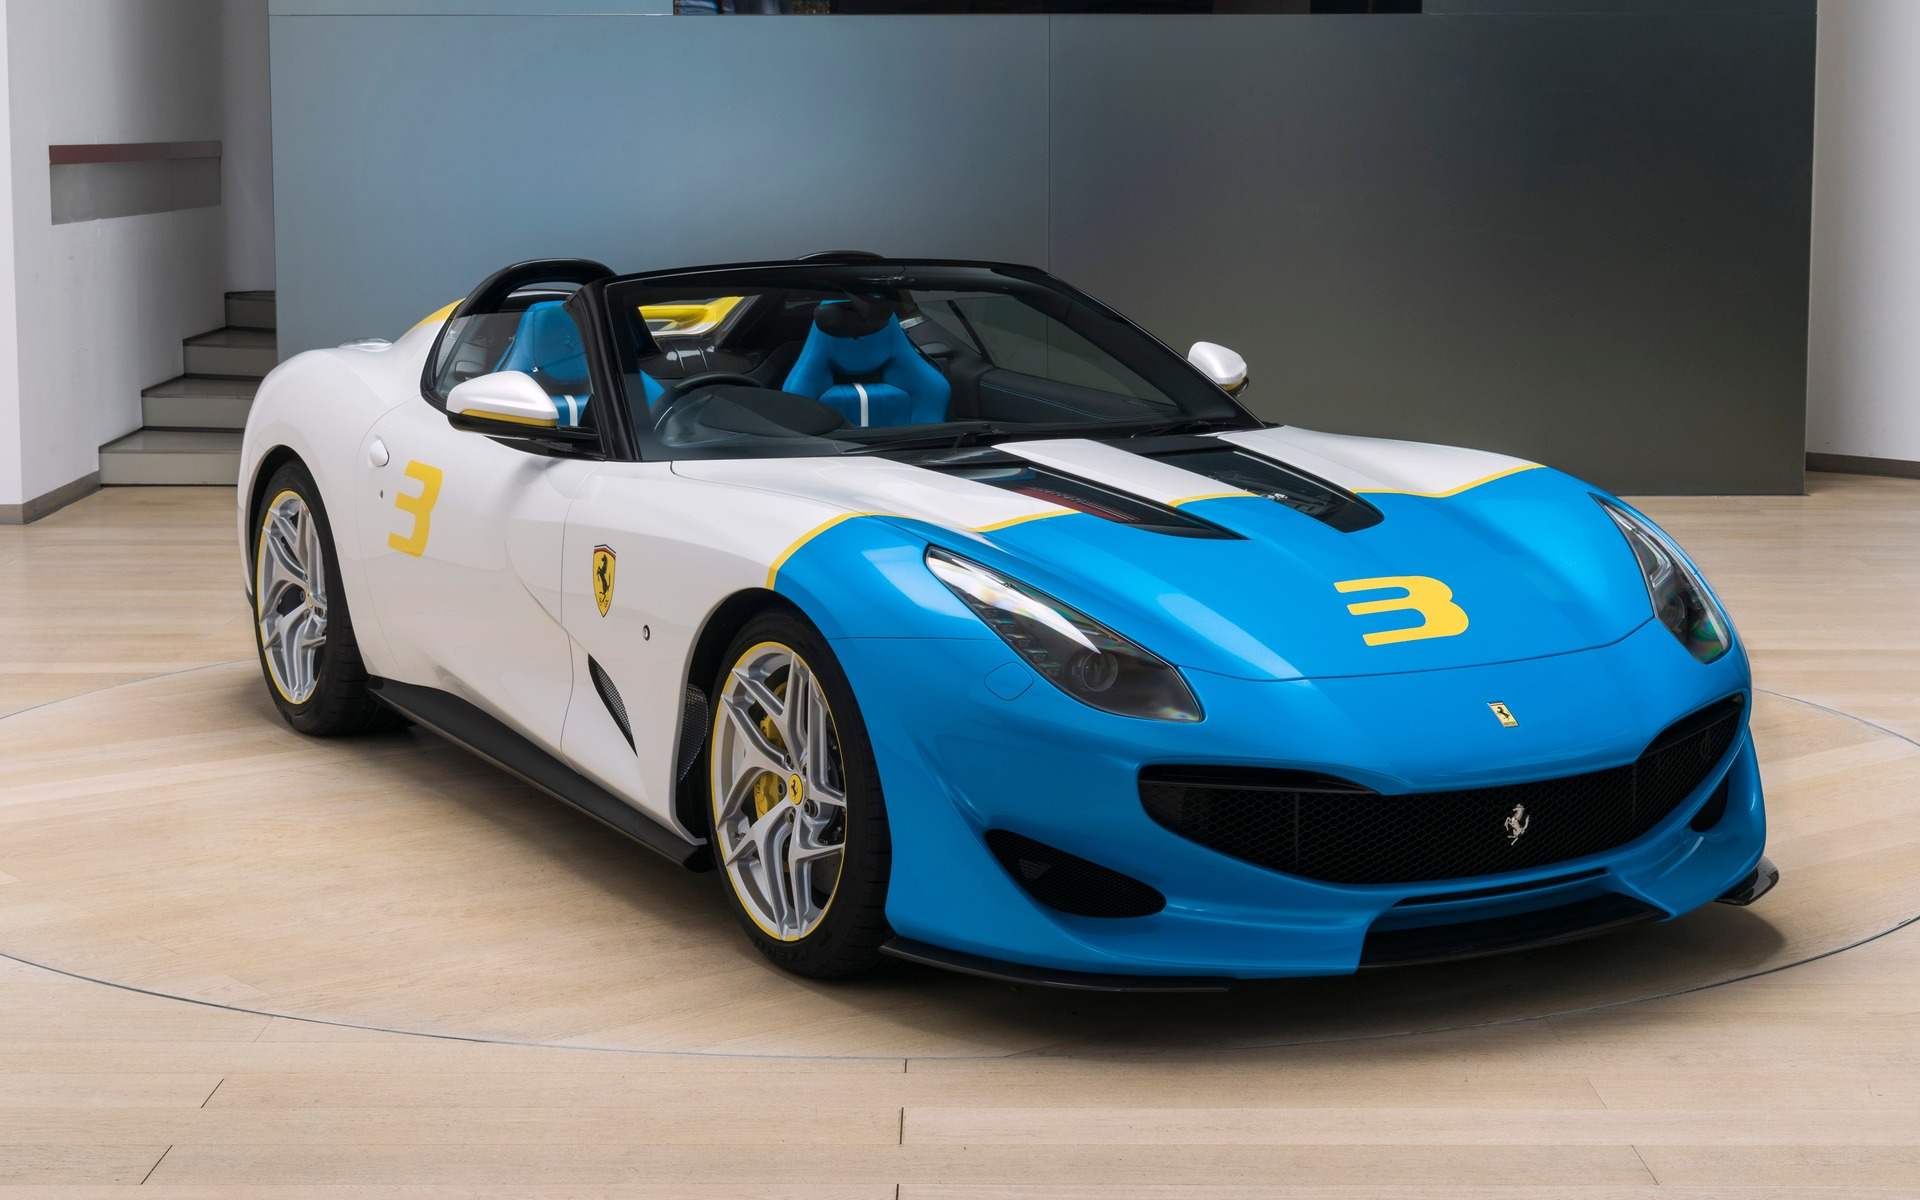 Ferrari Sp3jc The Brand S Most Recent Project The Car Guide